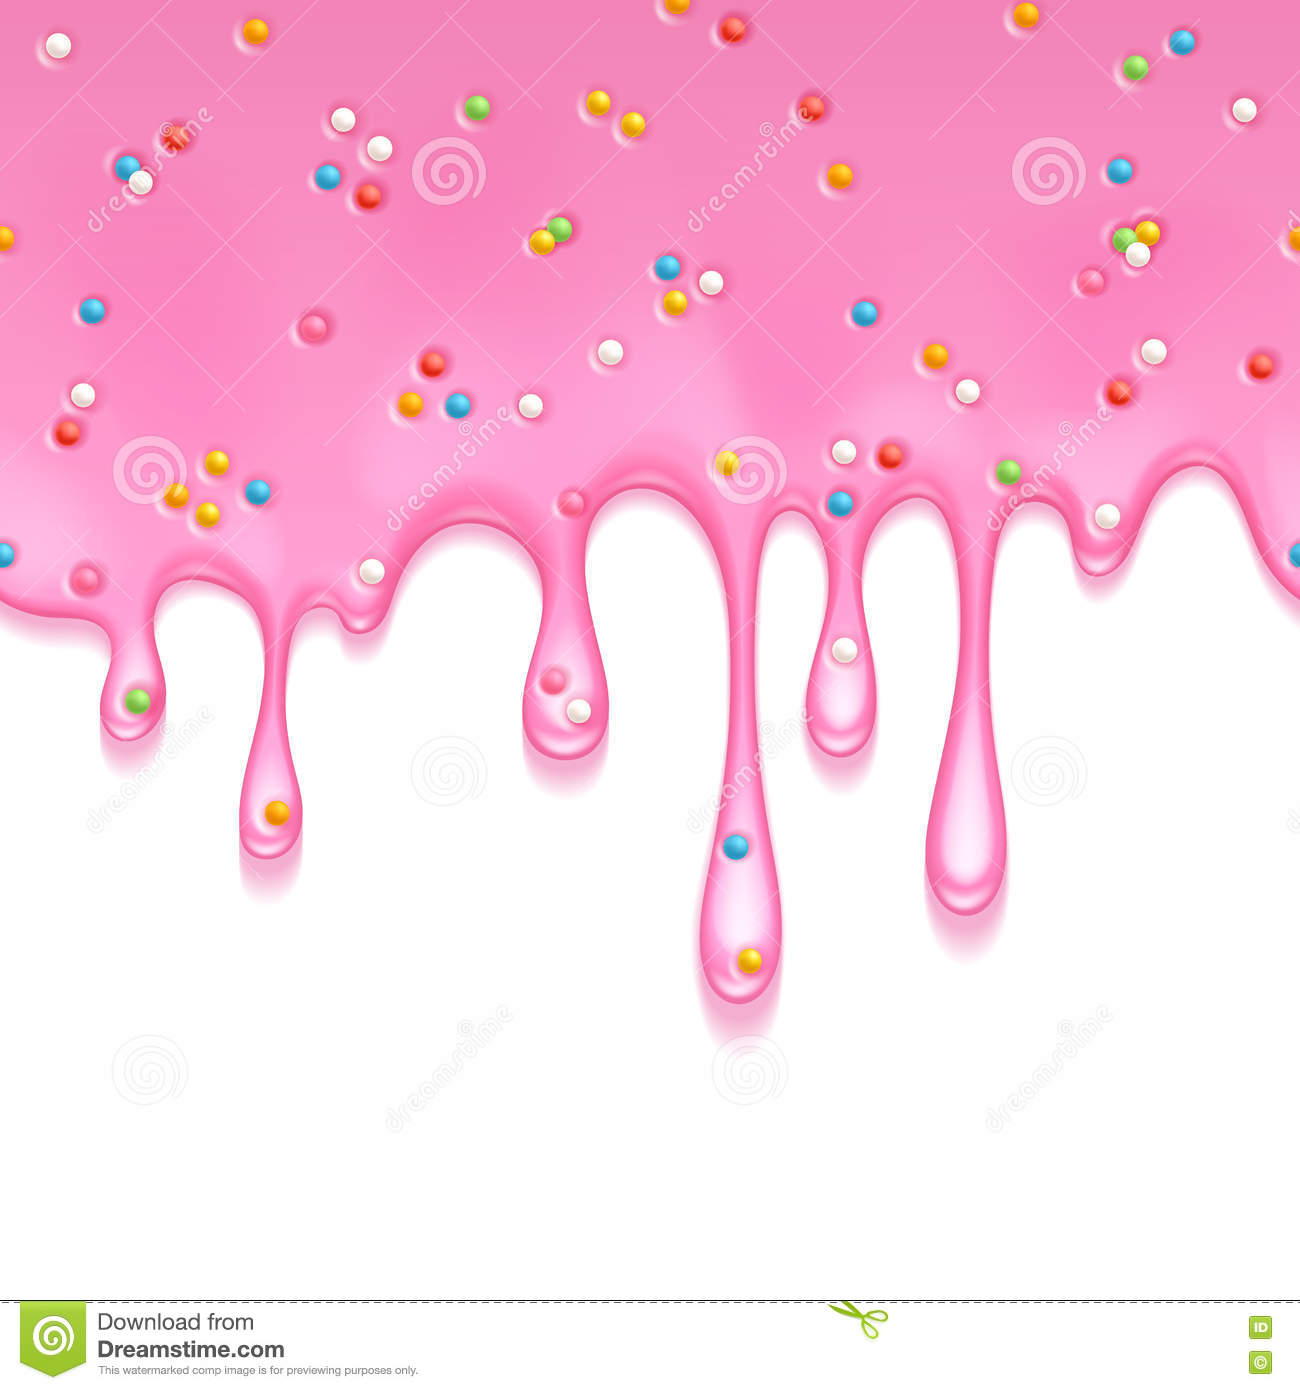 Melting Ice Cream Simple Wallpaper Designs: Jellylike Cartoons, Illustrations & Vector Stock Images